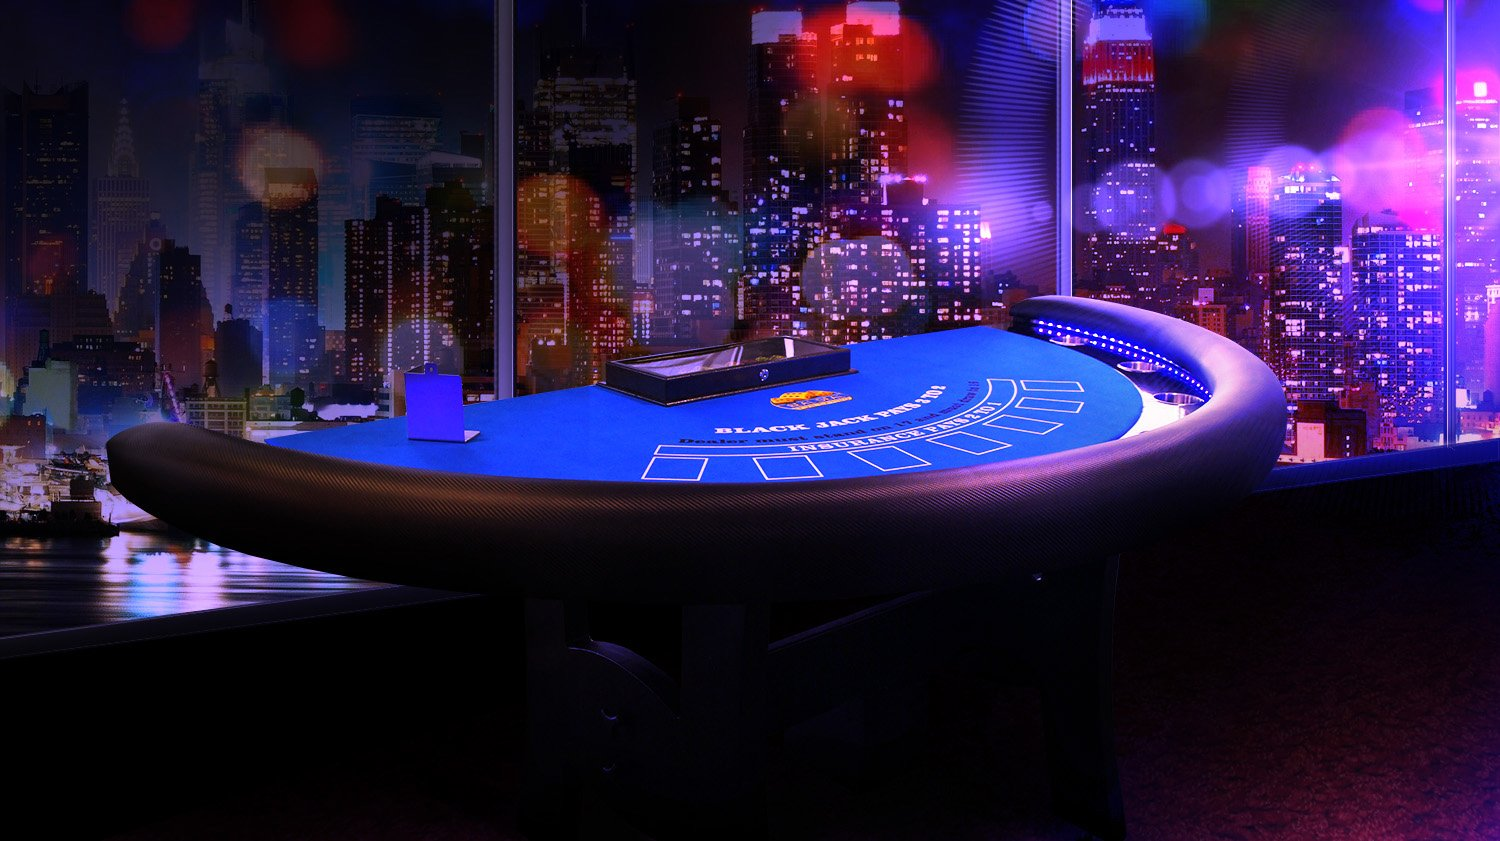 Holdem club el salvador